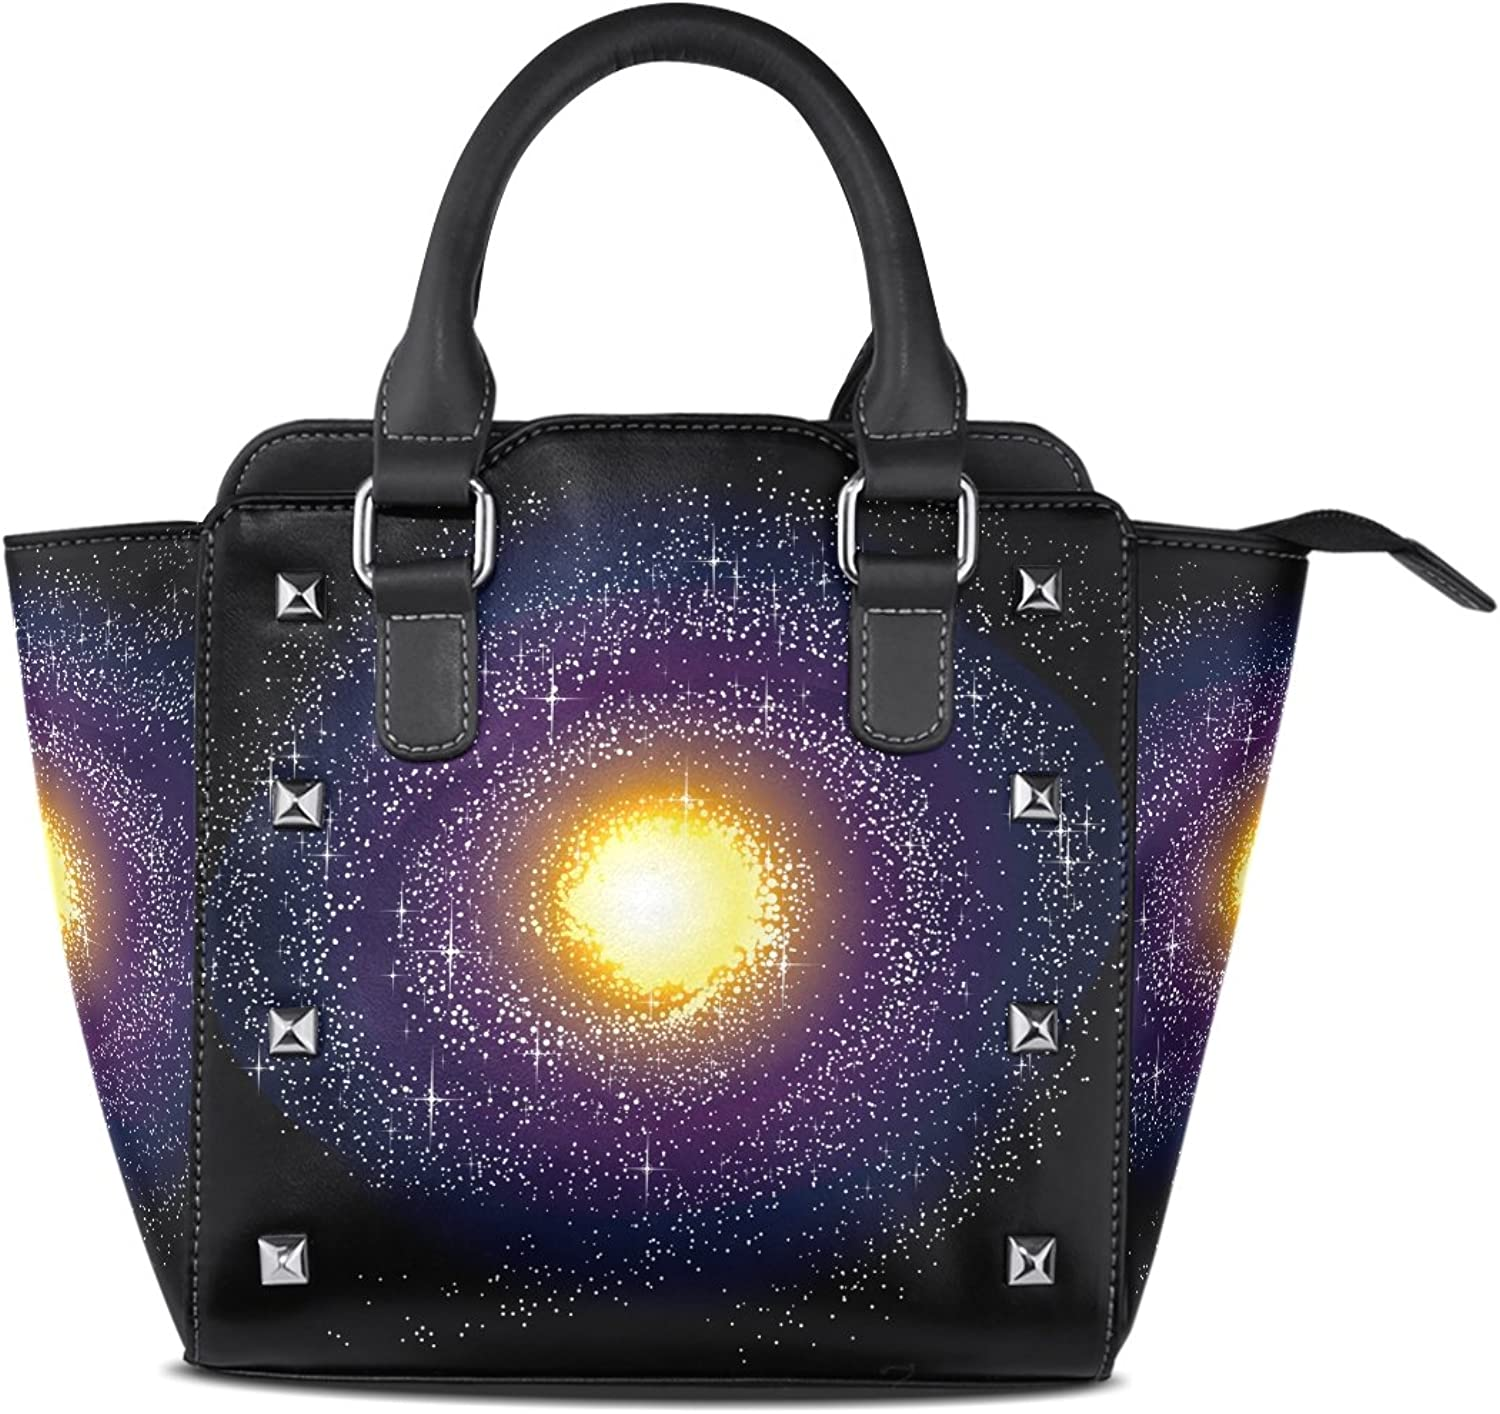 Sunlome Spiral Galaxy Milky Way Print Women's Leather Tote Shoulder Bags Handbags